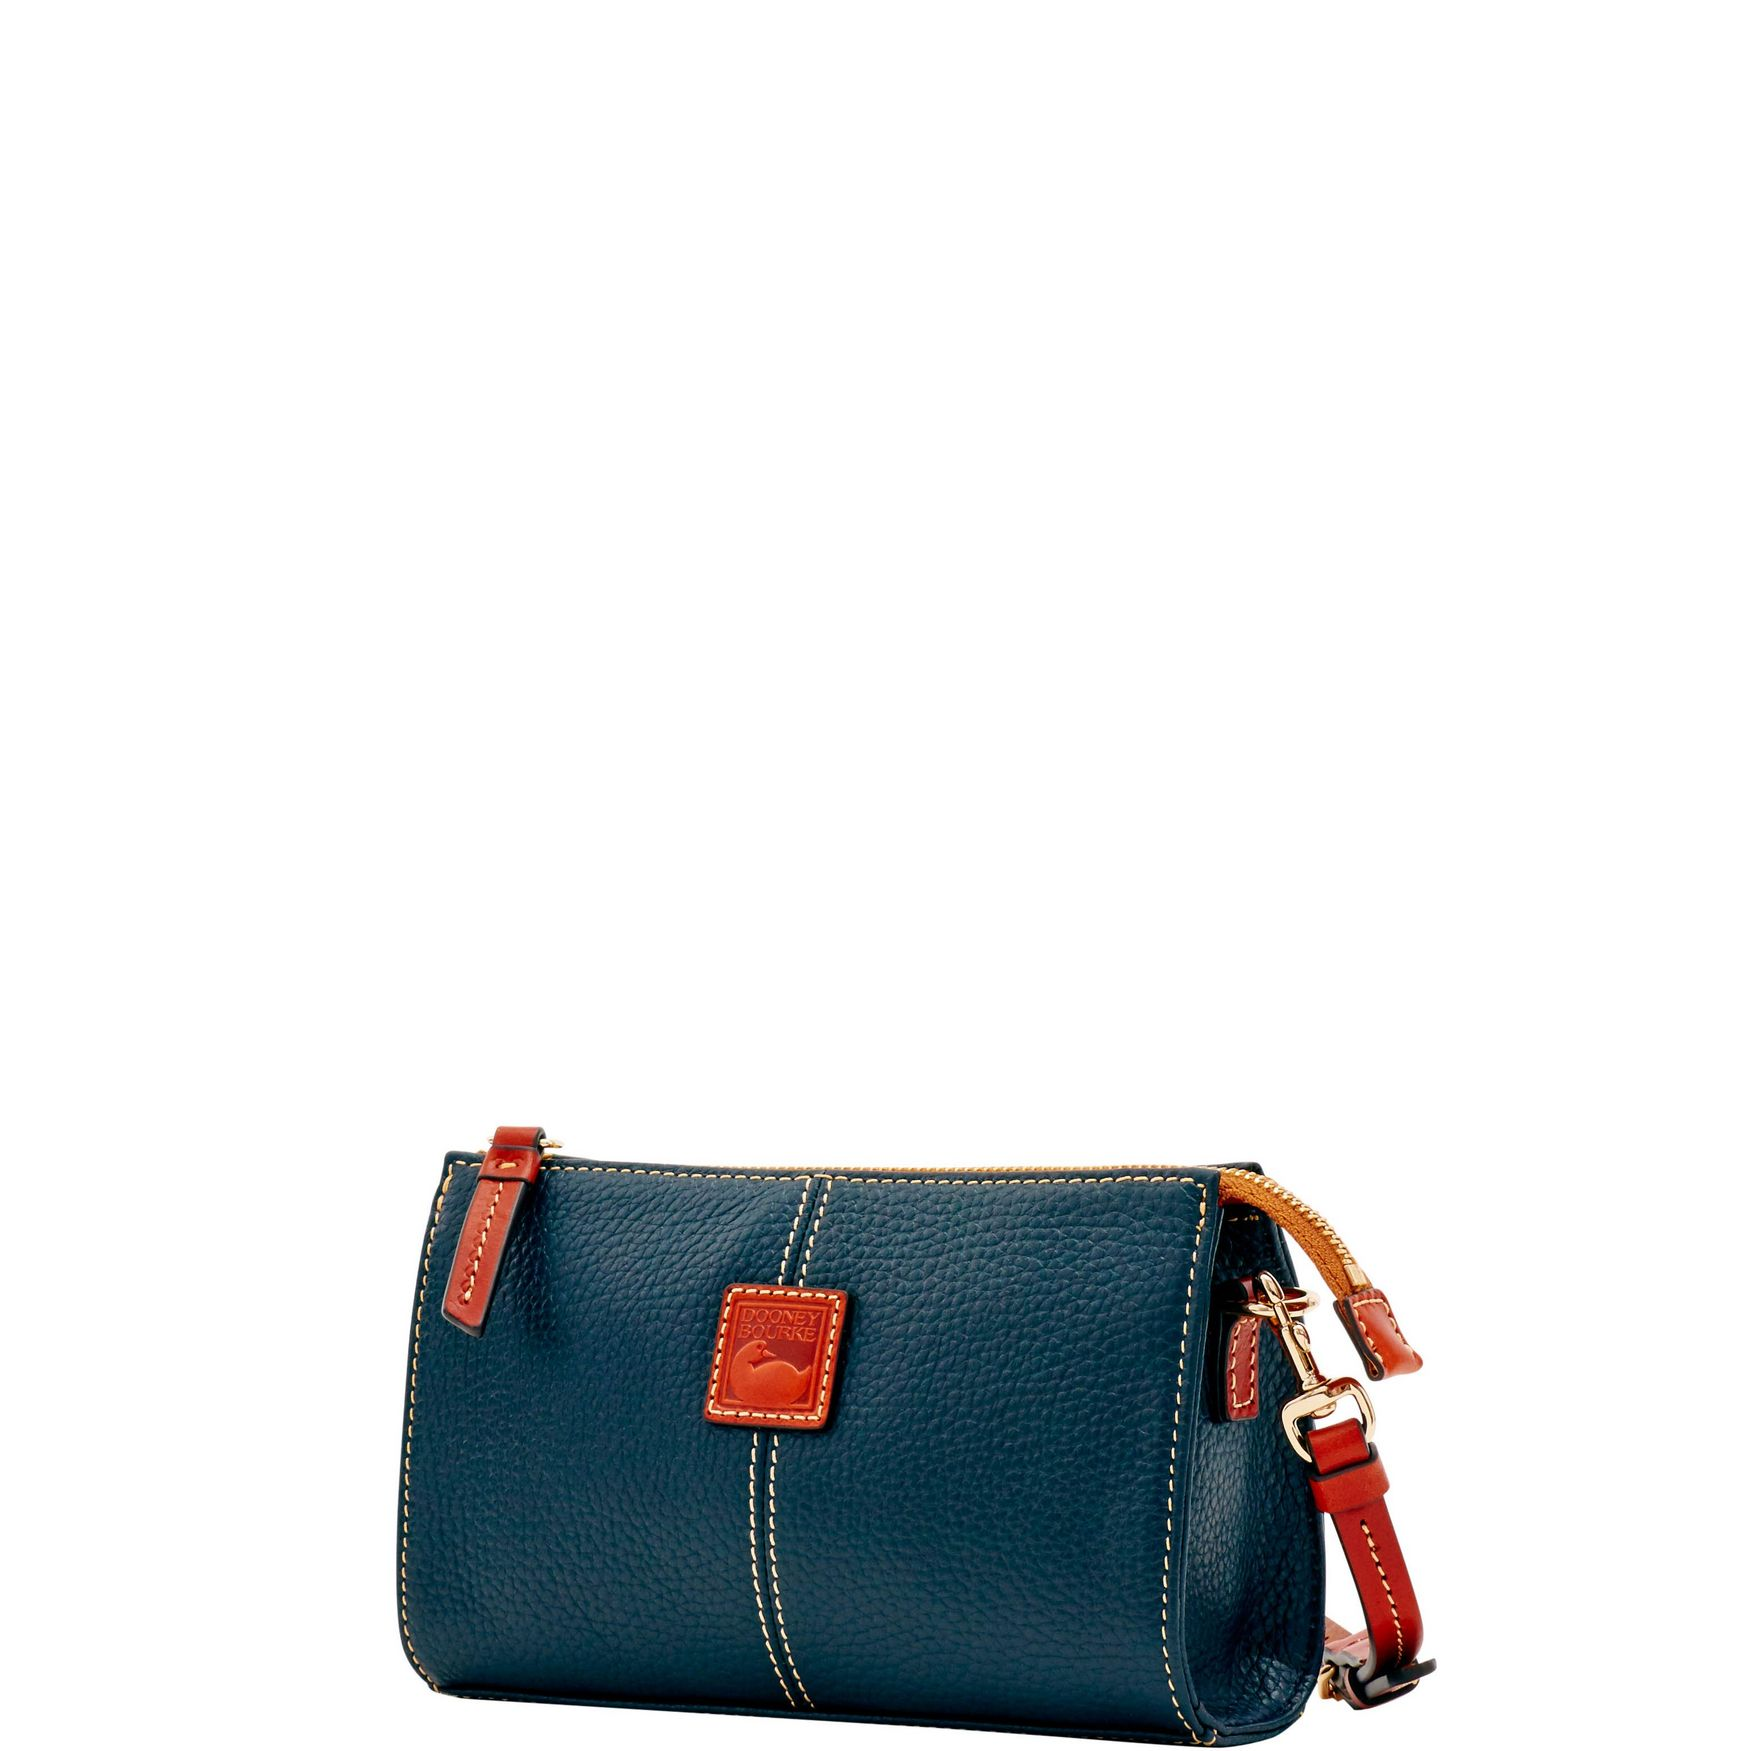 Dooney-amp-Bourke-Pebble-Grain-Small-Janine-Crossbody-Shoulder-Bag thumbnail 36